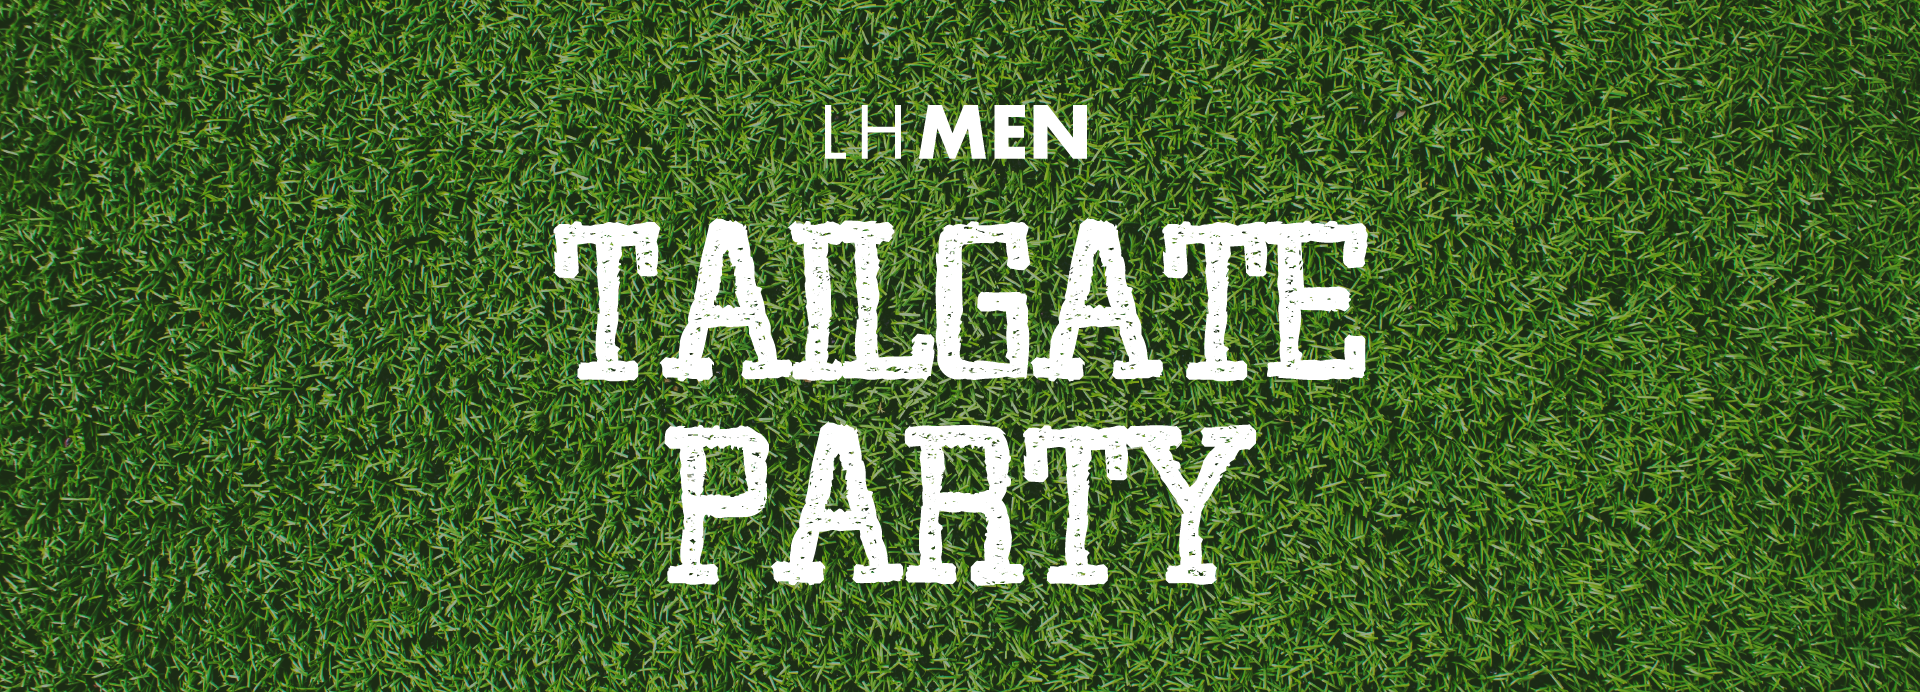 TailgateParty_1910x692.png